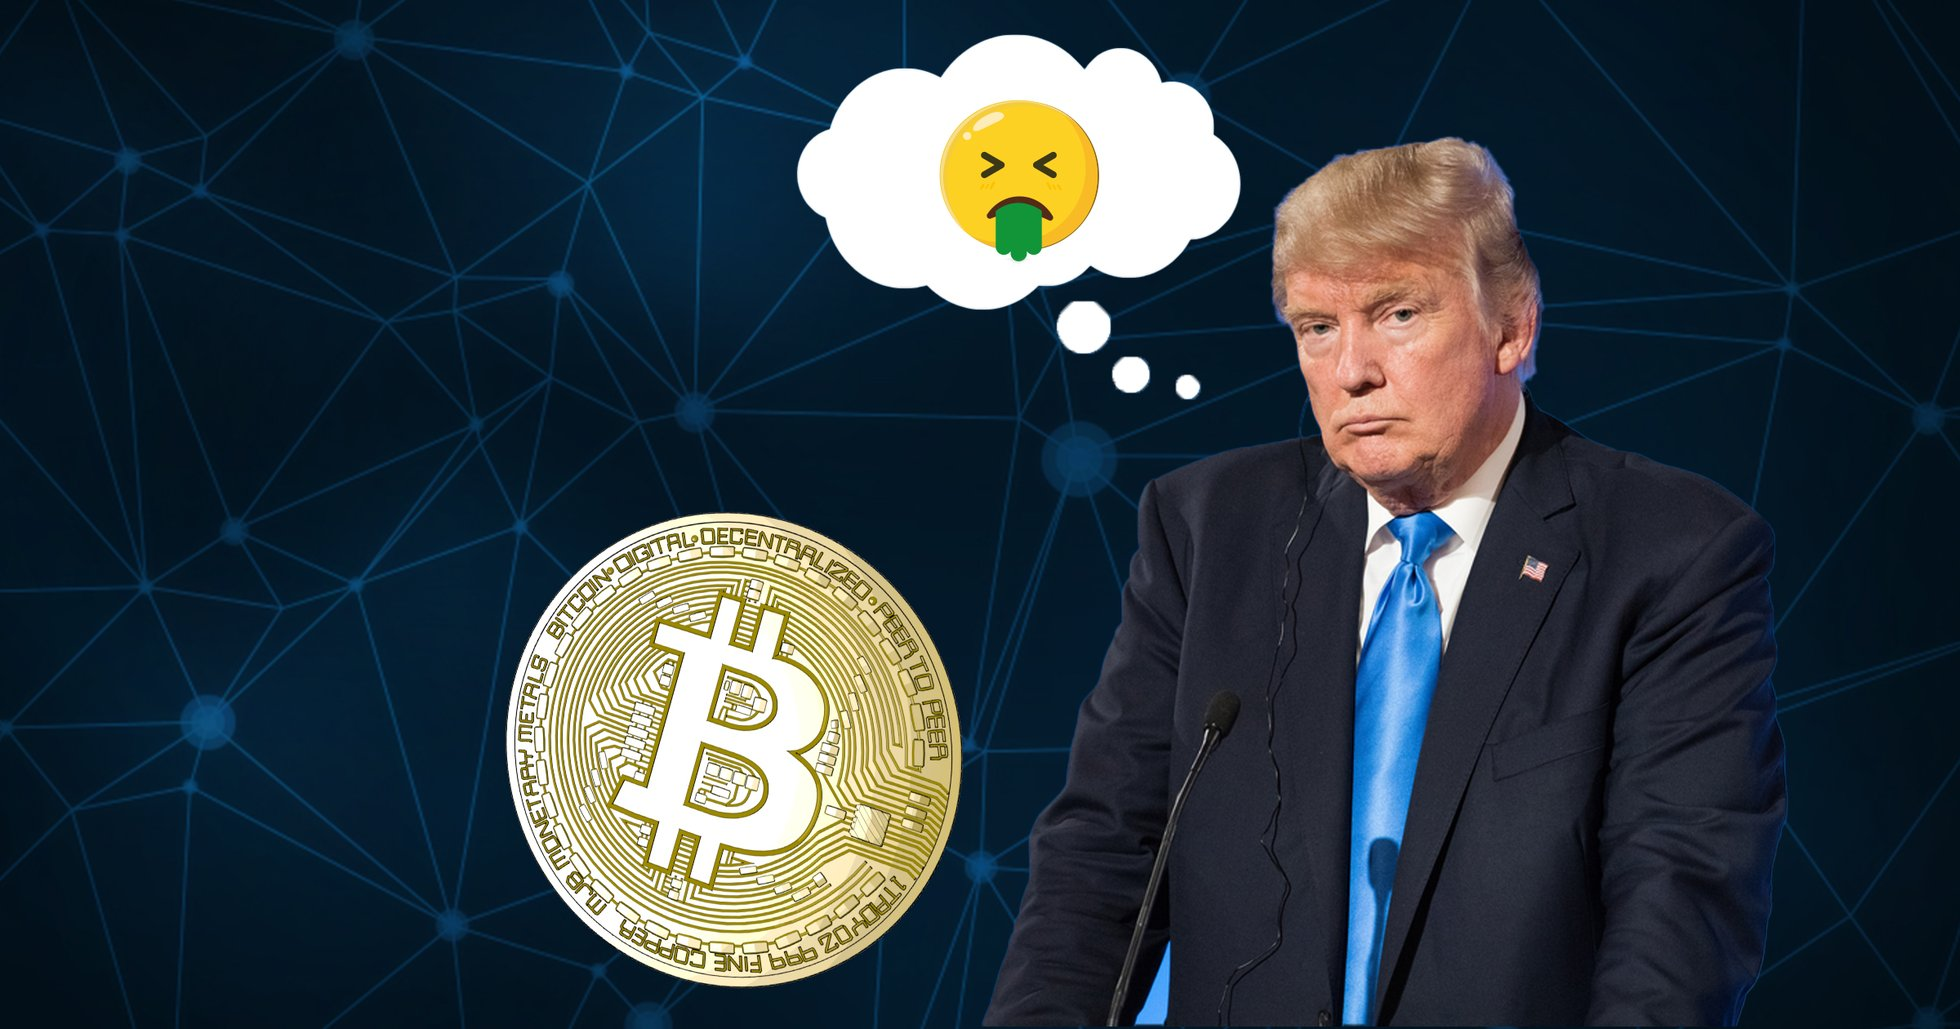 Donald Trump is not a fan of bitcoin: It's pretend money based on thin air